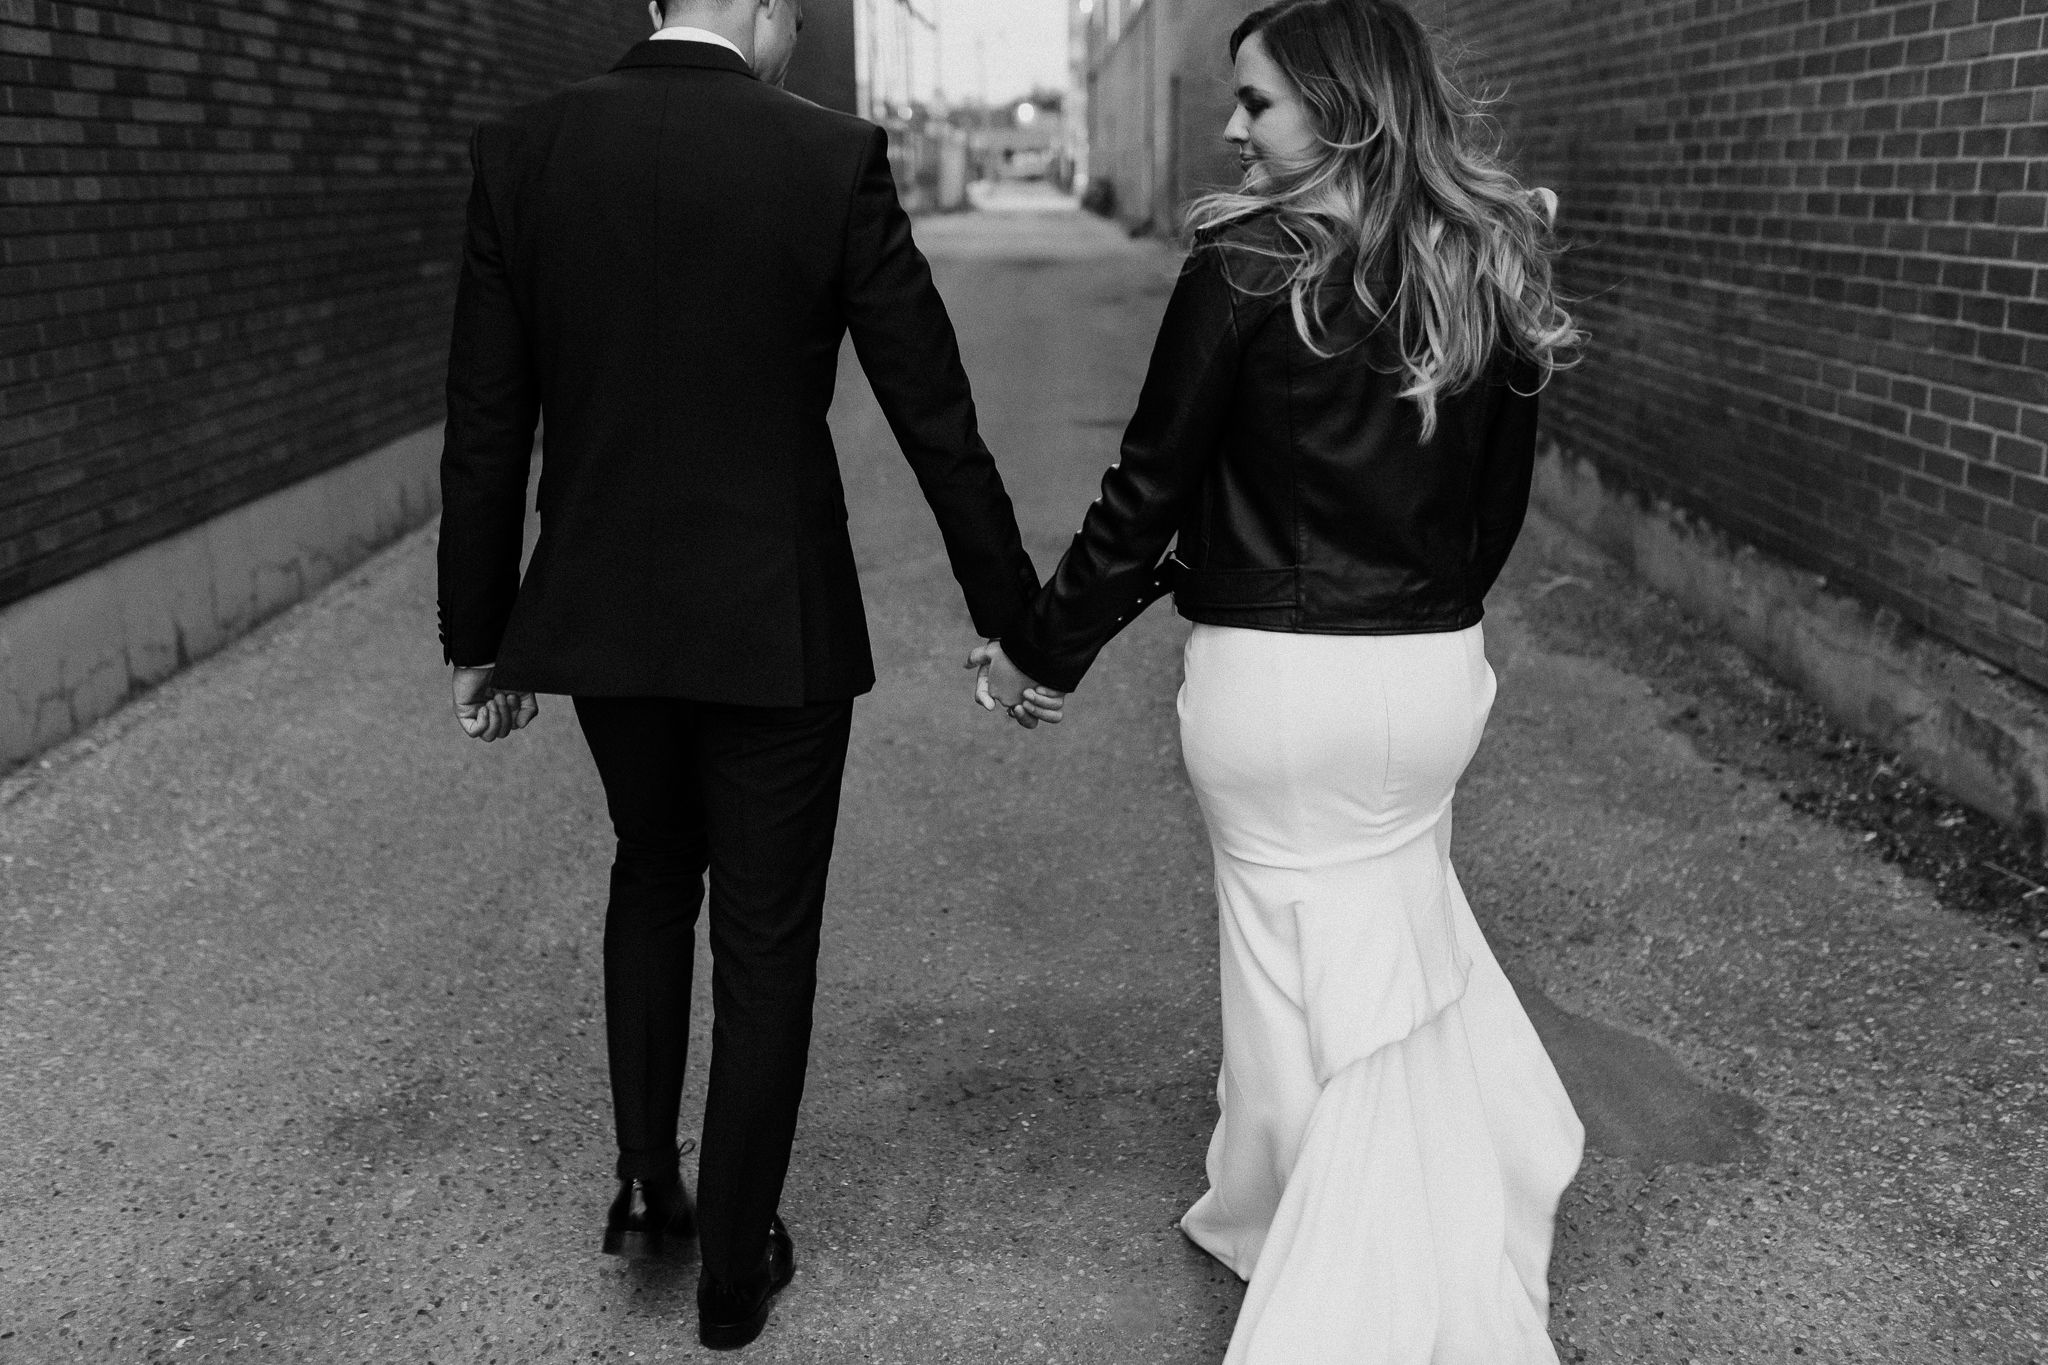 Black & white photo of bride and groom walking in Toronto alley holding hands with wind in the hair and wedding dress.